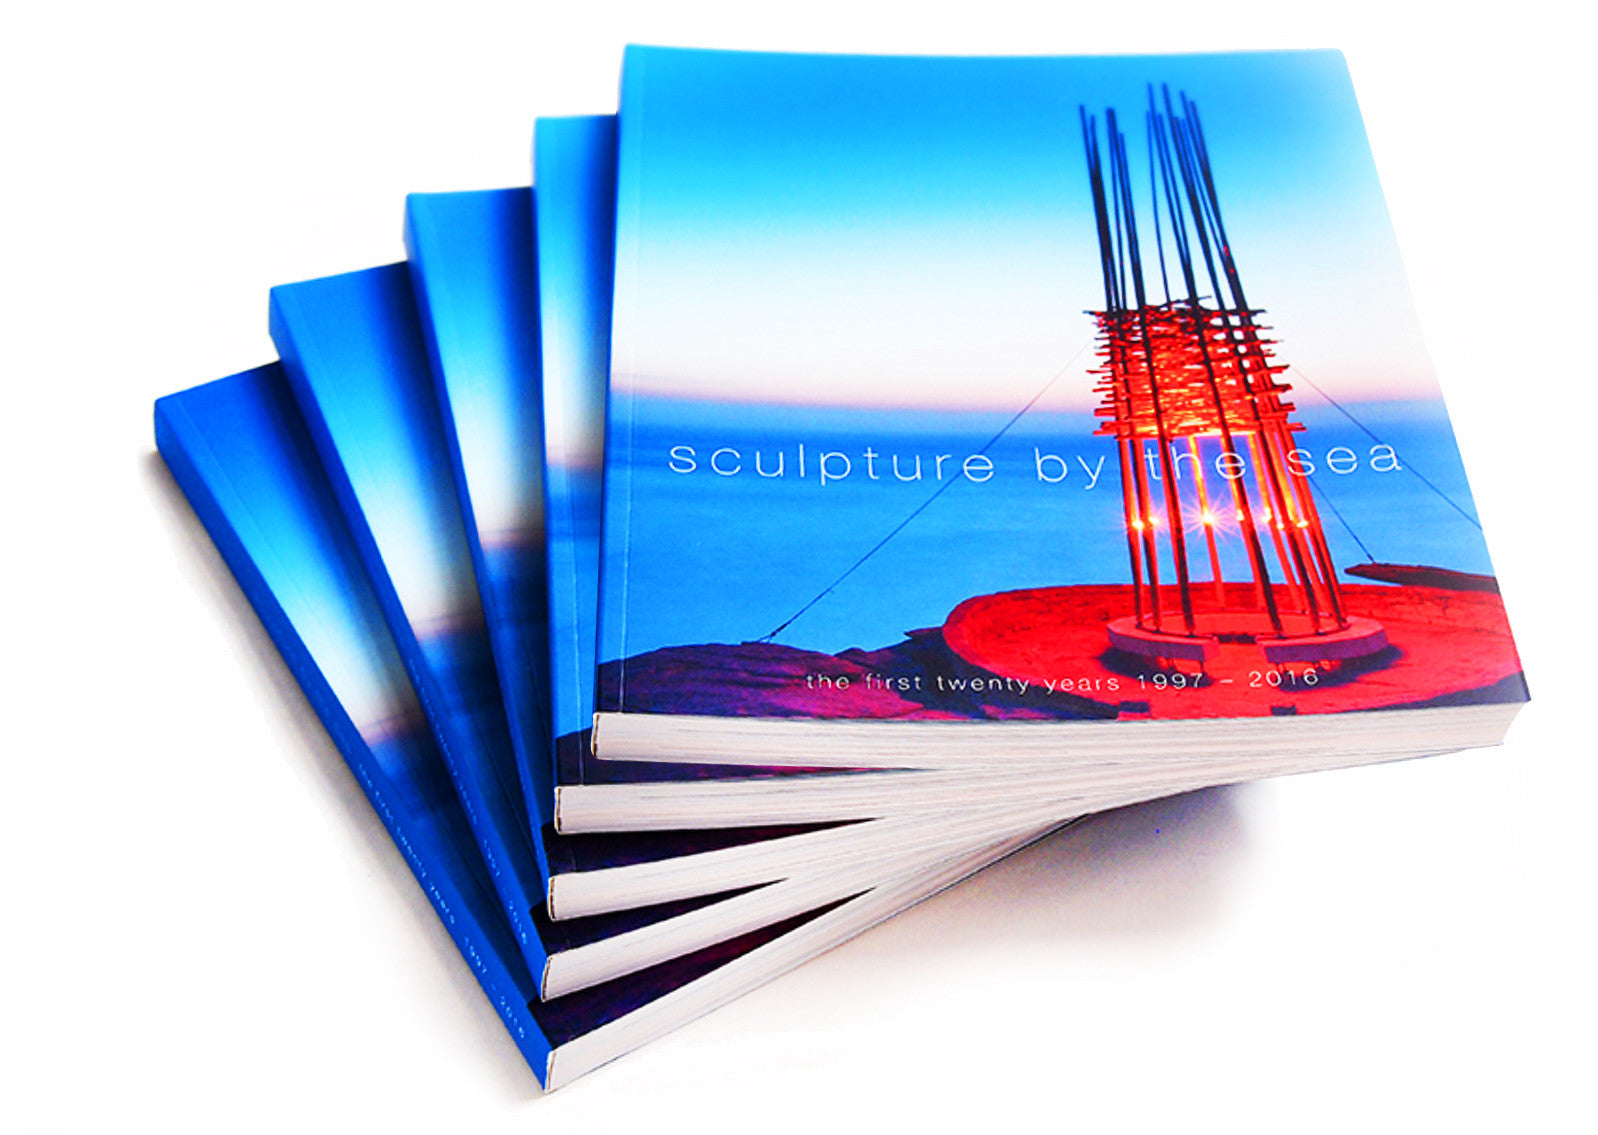 Sculpture by the Sea 20th Anniversary Book - Pack of 5